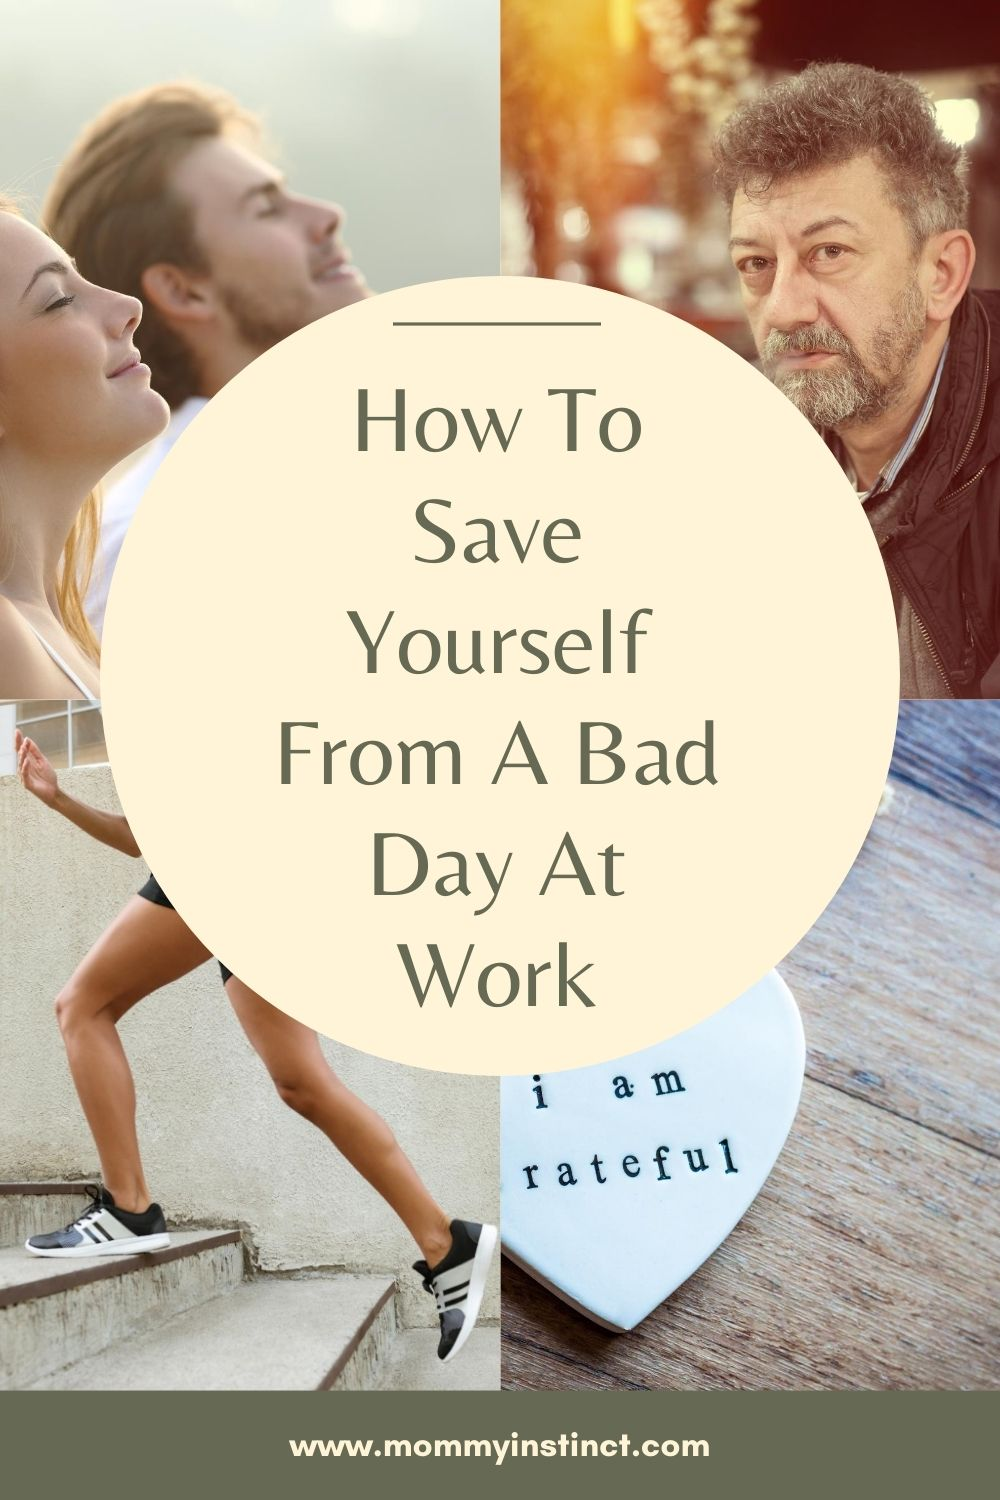 How To Save Yourself From A Bad Day At Work